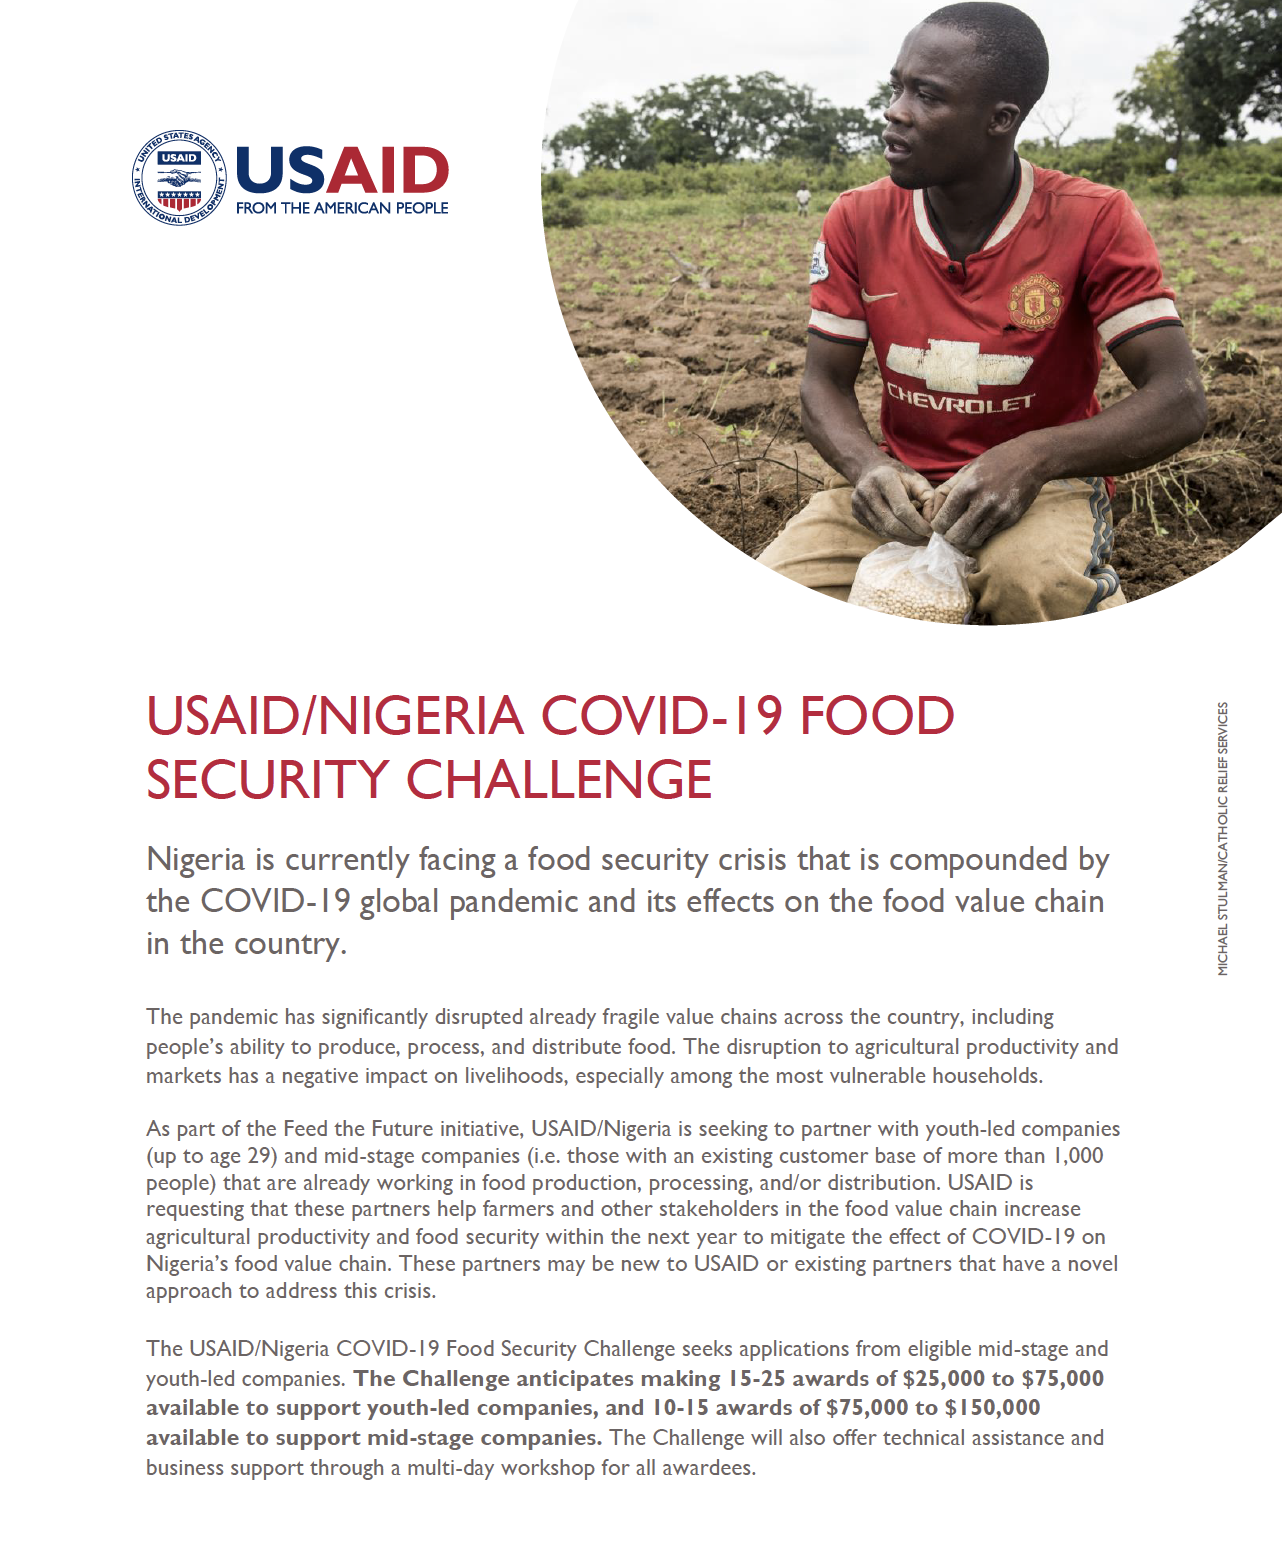 USAID/NIGERIA COVID-19 Food Security Challenge - Fact Sheet